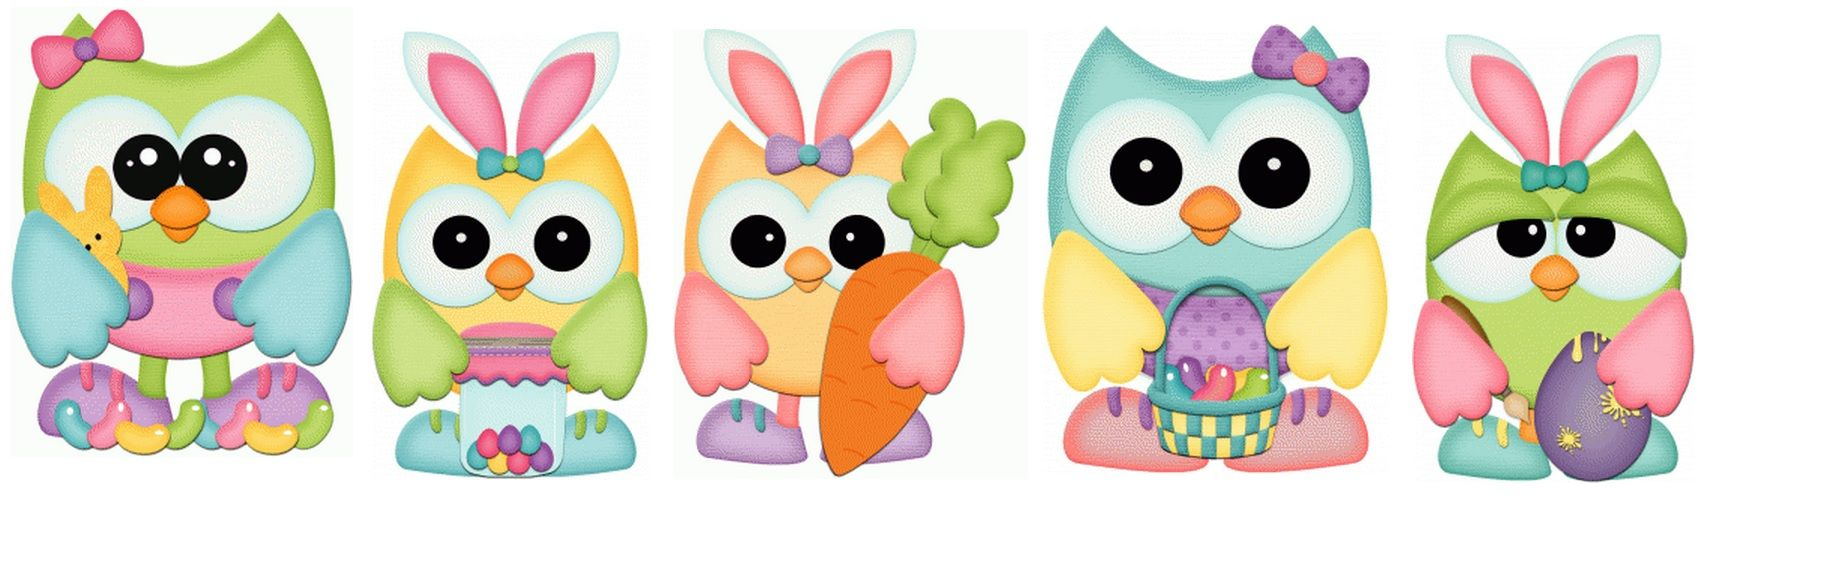 easter owls | PASCUA./ EASTER. | Pinterest | Imprimibles, De colores ...